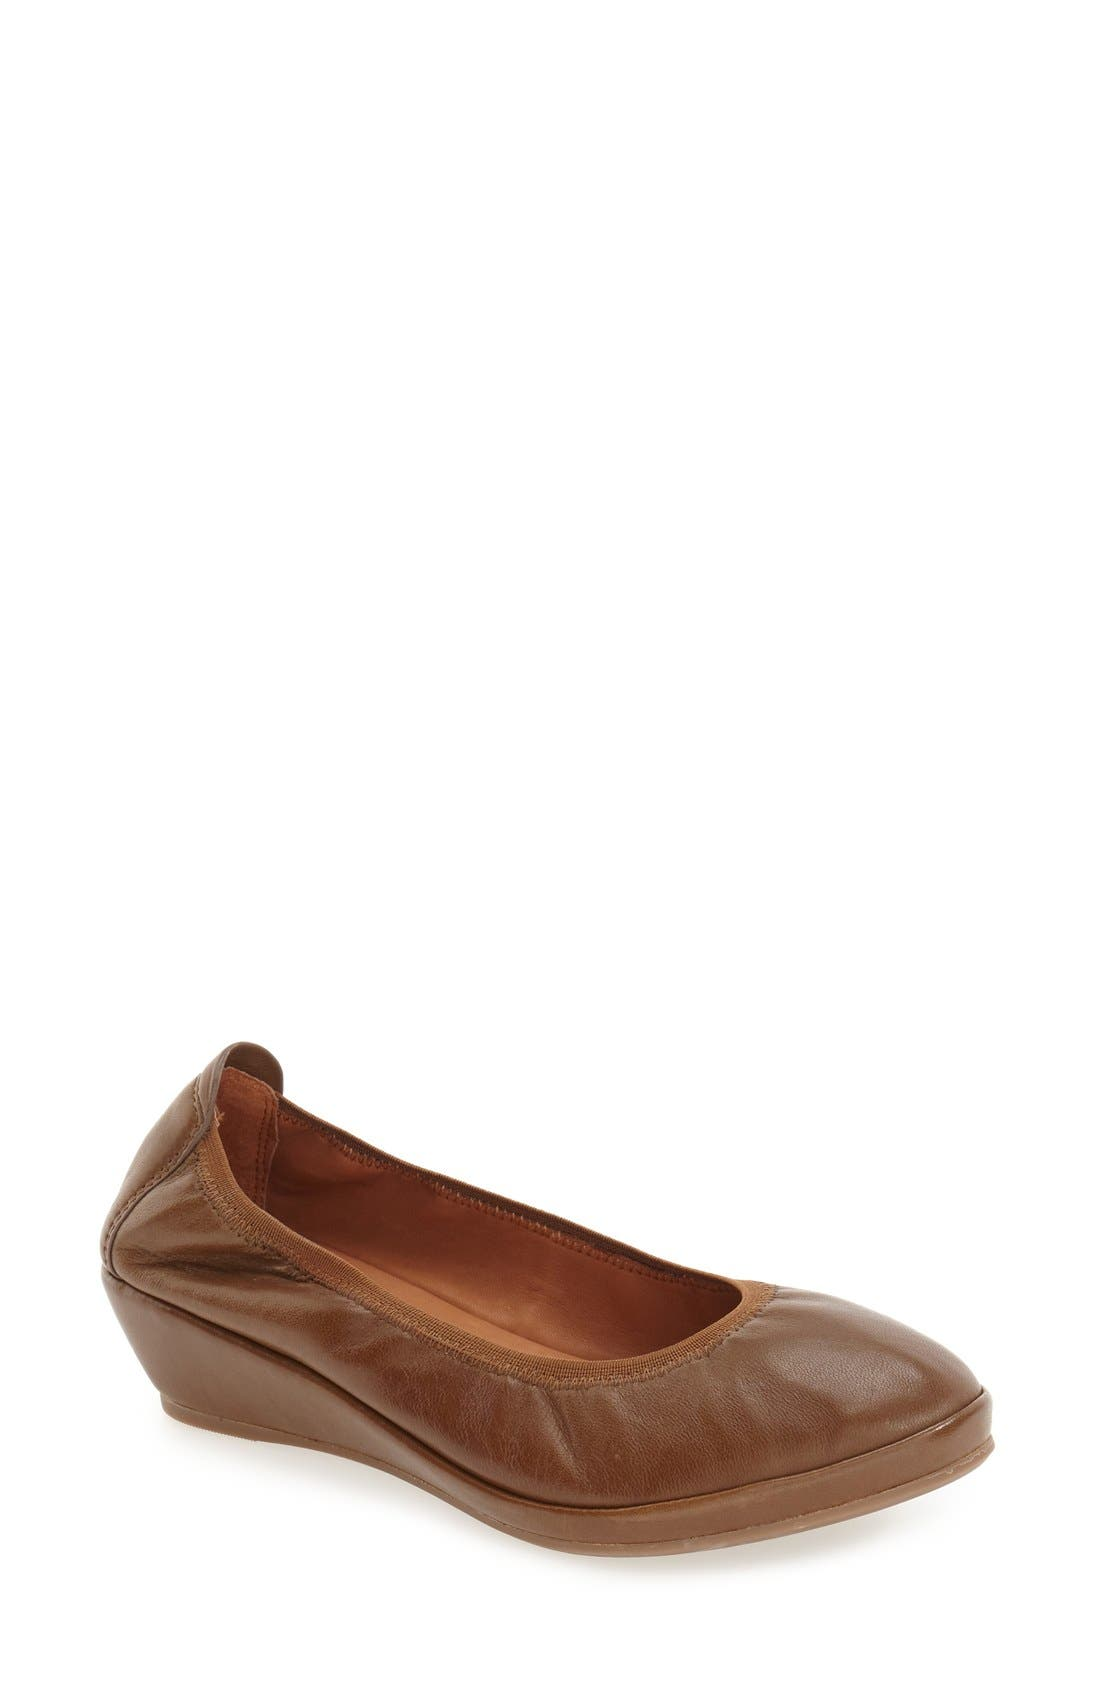 Gentle Souls 'Natalie' Wedge (Women)